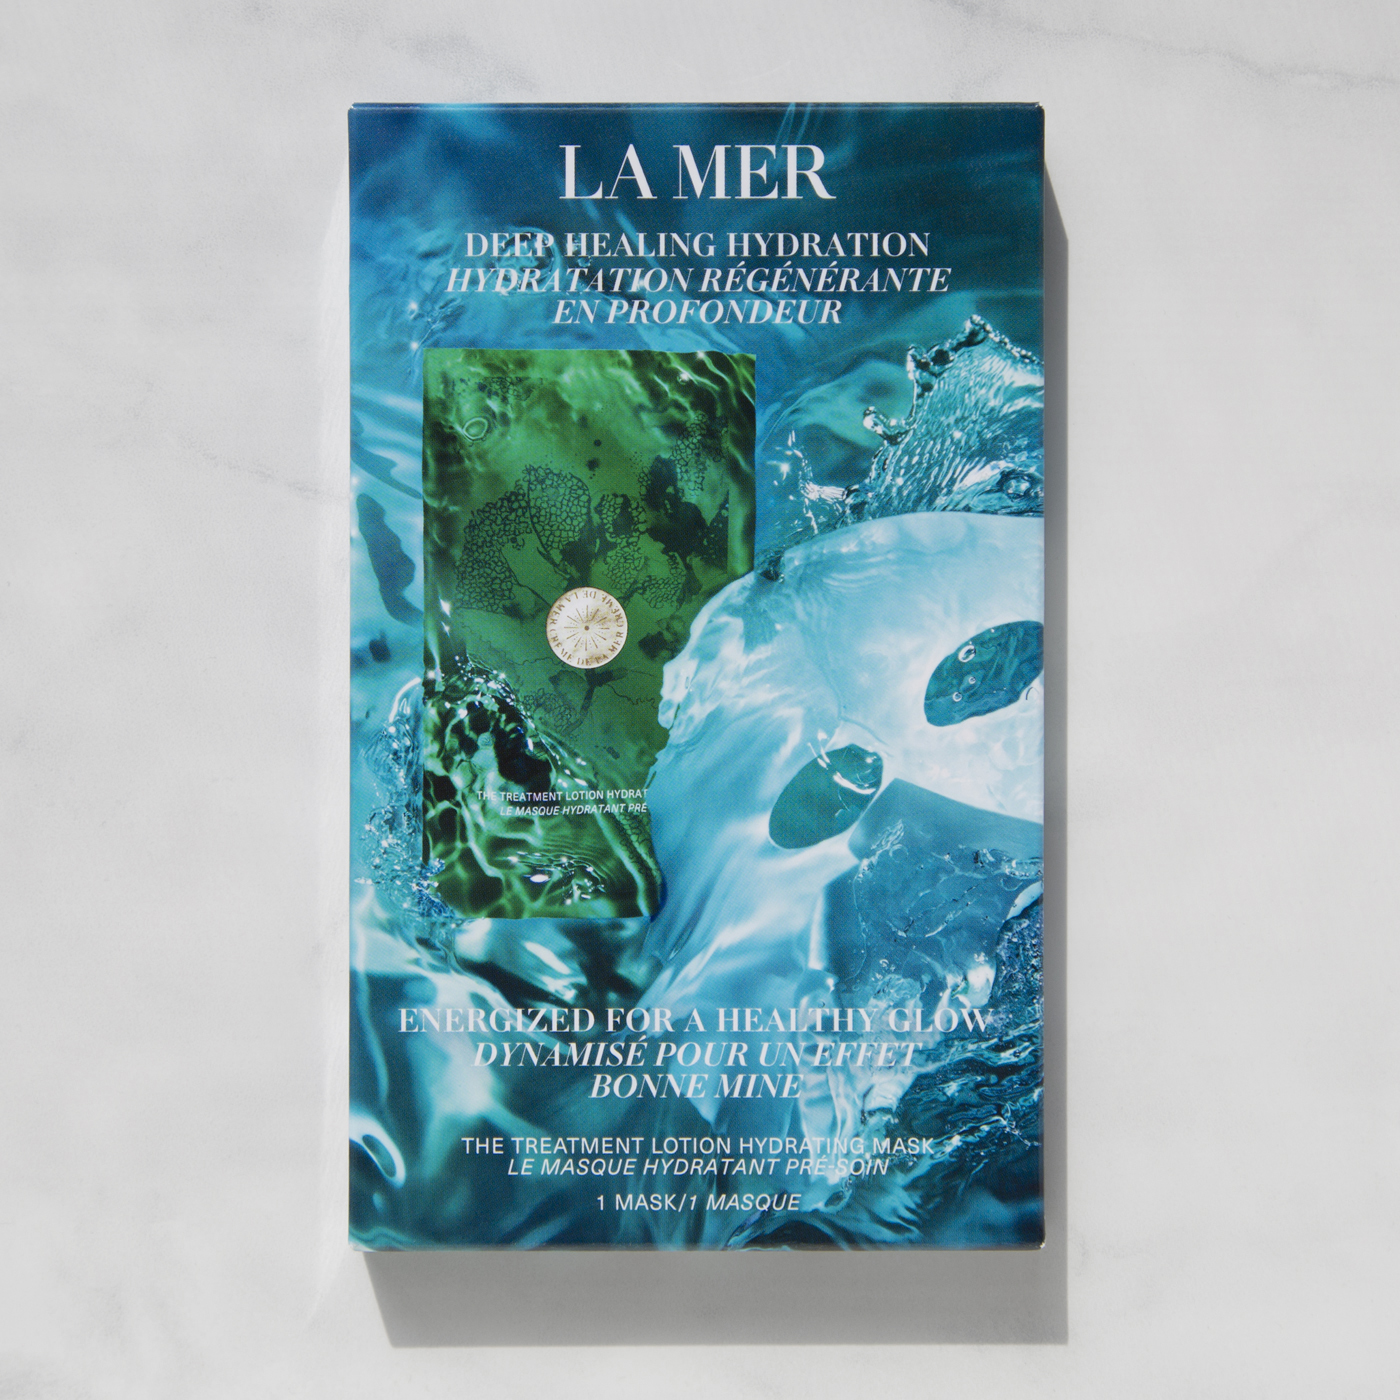 La Mer Treatment Lotion Hydrating Mask $25 for 1 or $150/6 - My Rating: ☆Duration: 8 minutesWhat It Is: Sheet mask containing a full ounce of The Treatment Lotion that hydrates, plumps and adds a healthy glow to the skin and is suitable for all skin types.Performance: Well, the fragrance is headache inducing for those sensitive but at least you only leave this one on for 8 minutes. The ingredient list is a mile long which I think might have something to do with the stinging sensation I experienced upon application. Probably the most moist sheet mask I've ever used and was dripping all over my clothes and making a mess (I feel like you would just have to lay down on a towel for the 8 minutes to avoid getting serum everywhere). Directions say to massage excess serum in so I did so and then it dried down and made my face feel very tight. My skin was red and inflamed afterwards and did not feel or look very good. I had to add my regular skincare over top to try and soothe the irritation and dryness.Would I Recommend: Absolutely not, I do not understand the Sephora rating or the hype/love for this brand. One of, if not the, worst sheet masks I have ever used and it was ridiculously expensive. Save your skin and bank account, skip this one.Sephora Rating: ☆☆☆☆.3